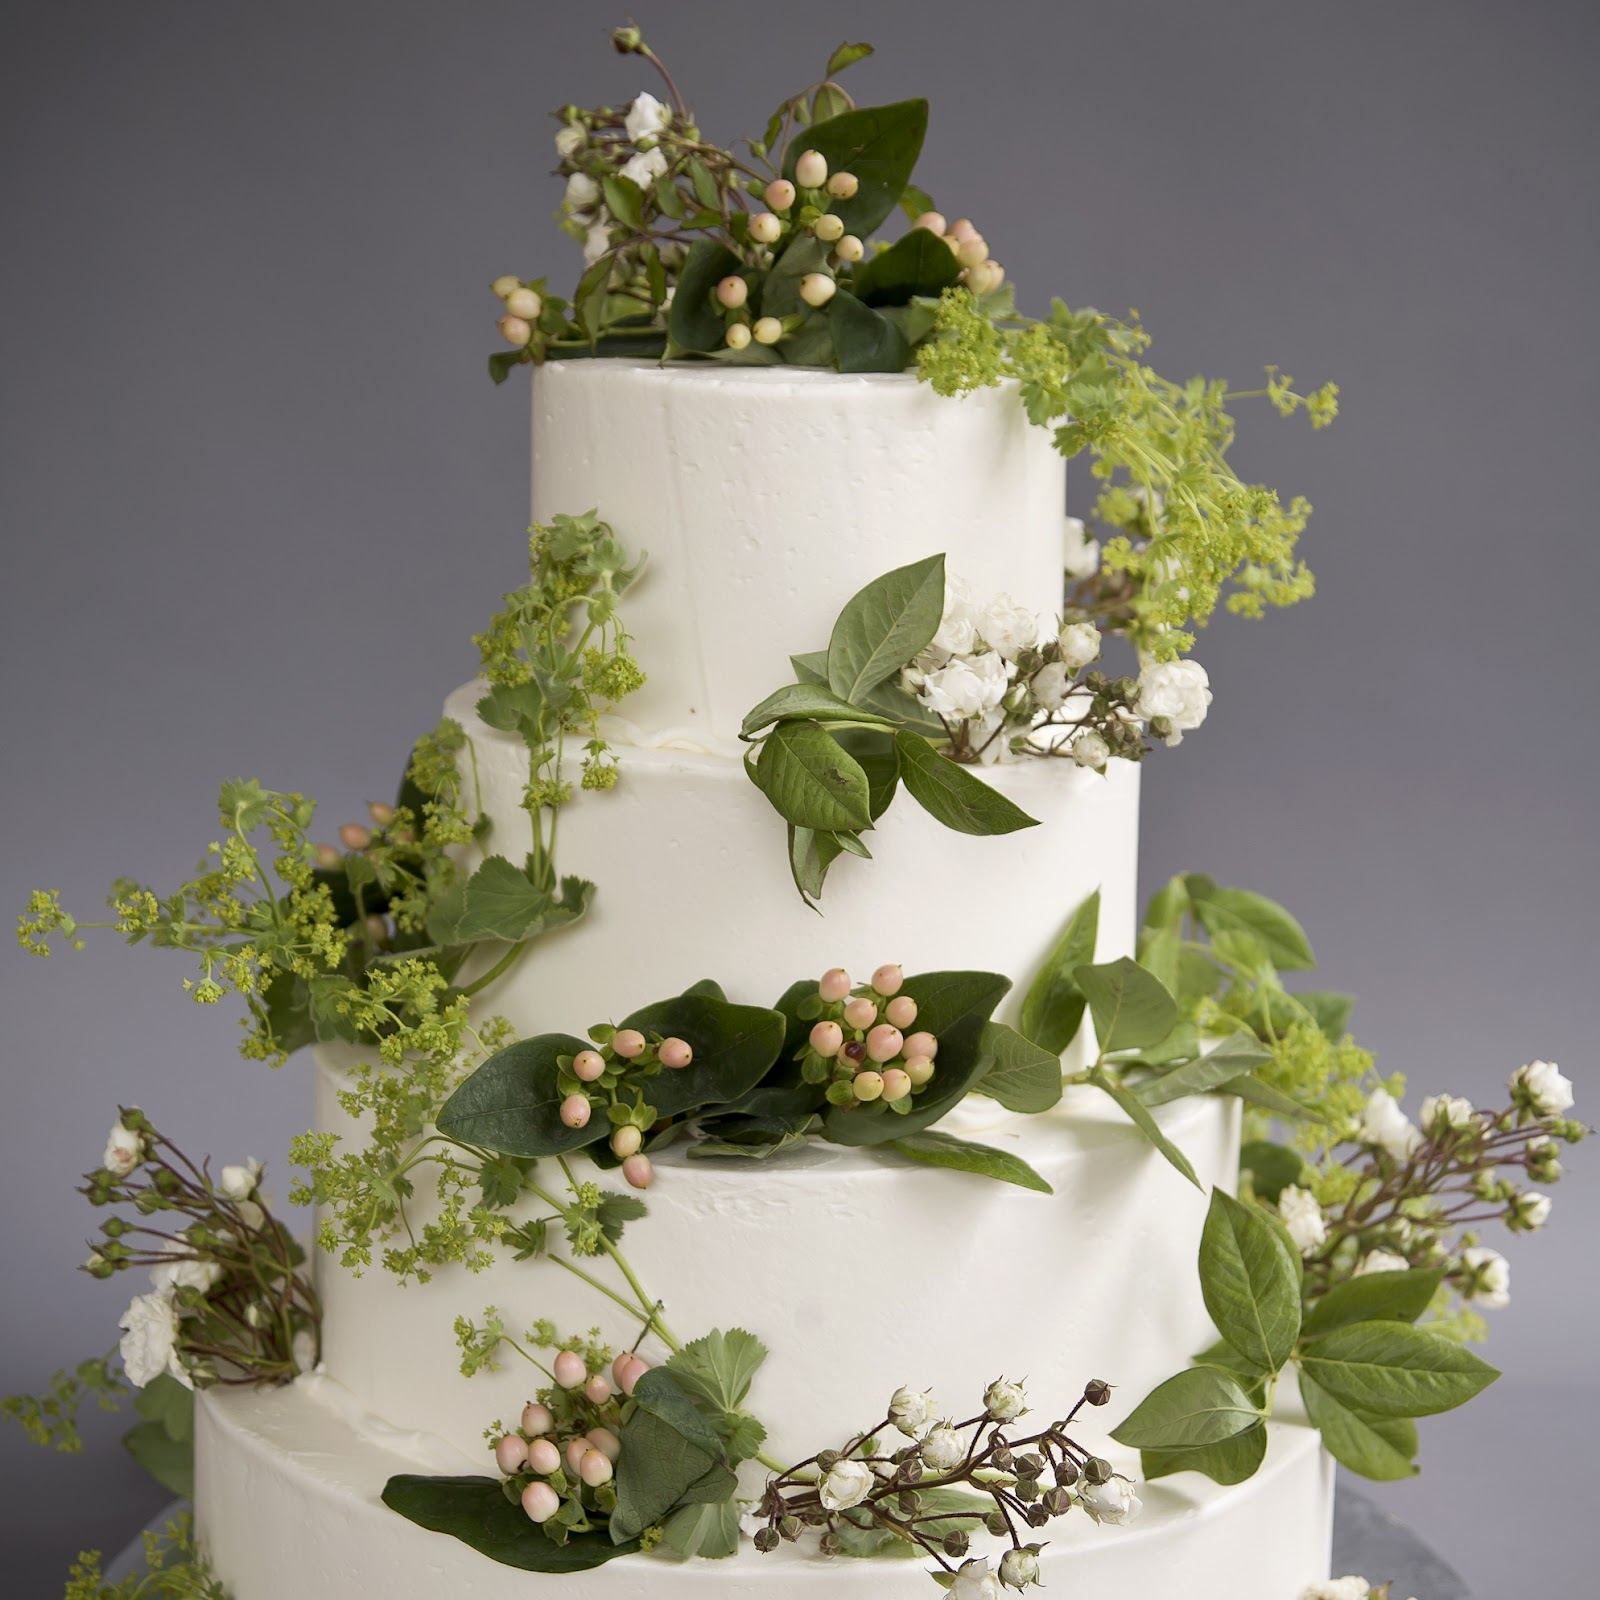 A Simple Cake: Buttercream or Fondant? Which is Best For A ...